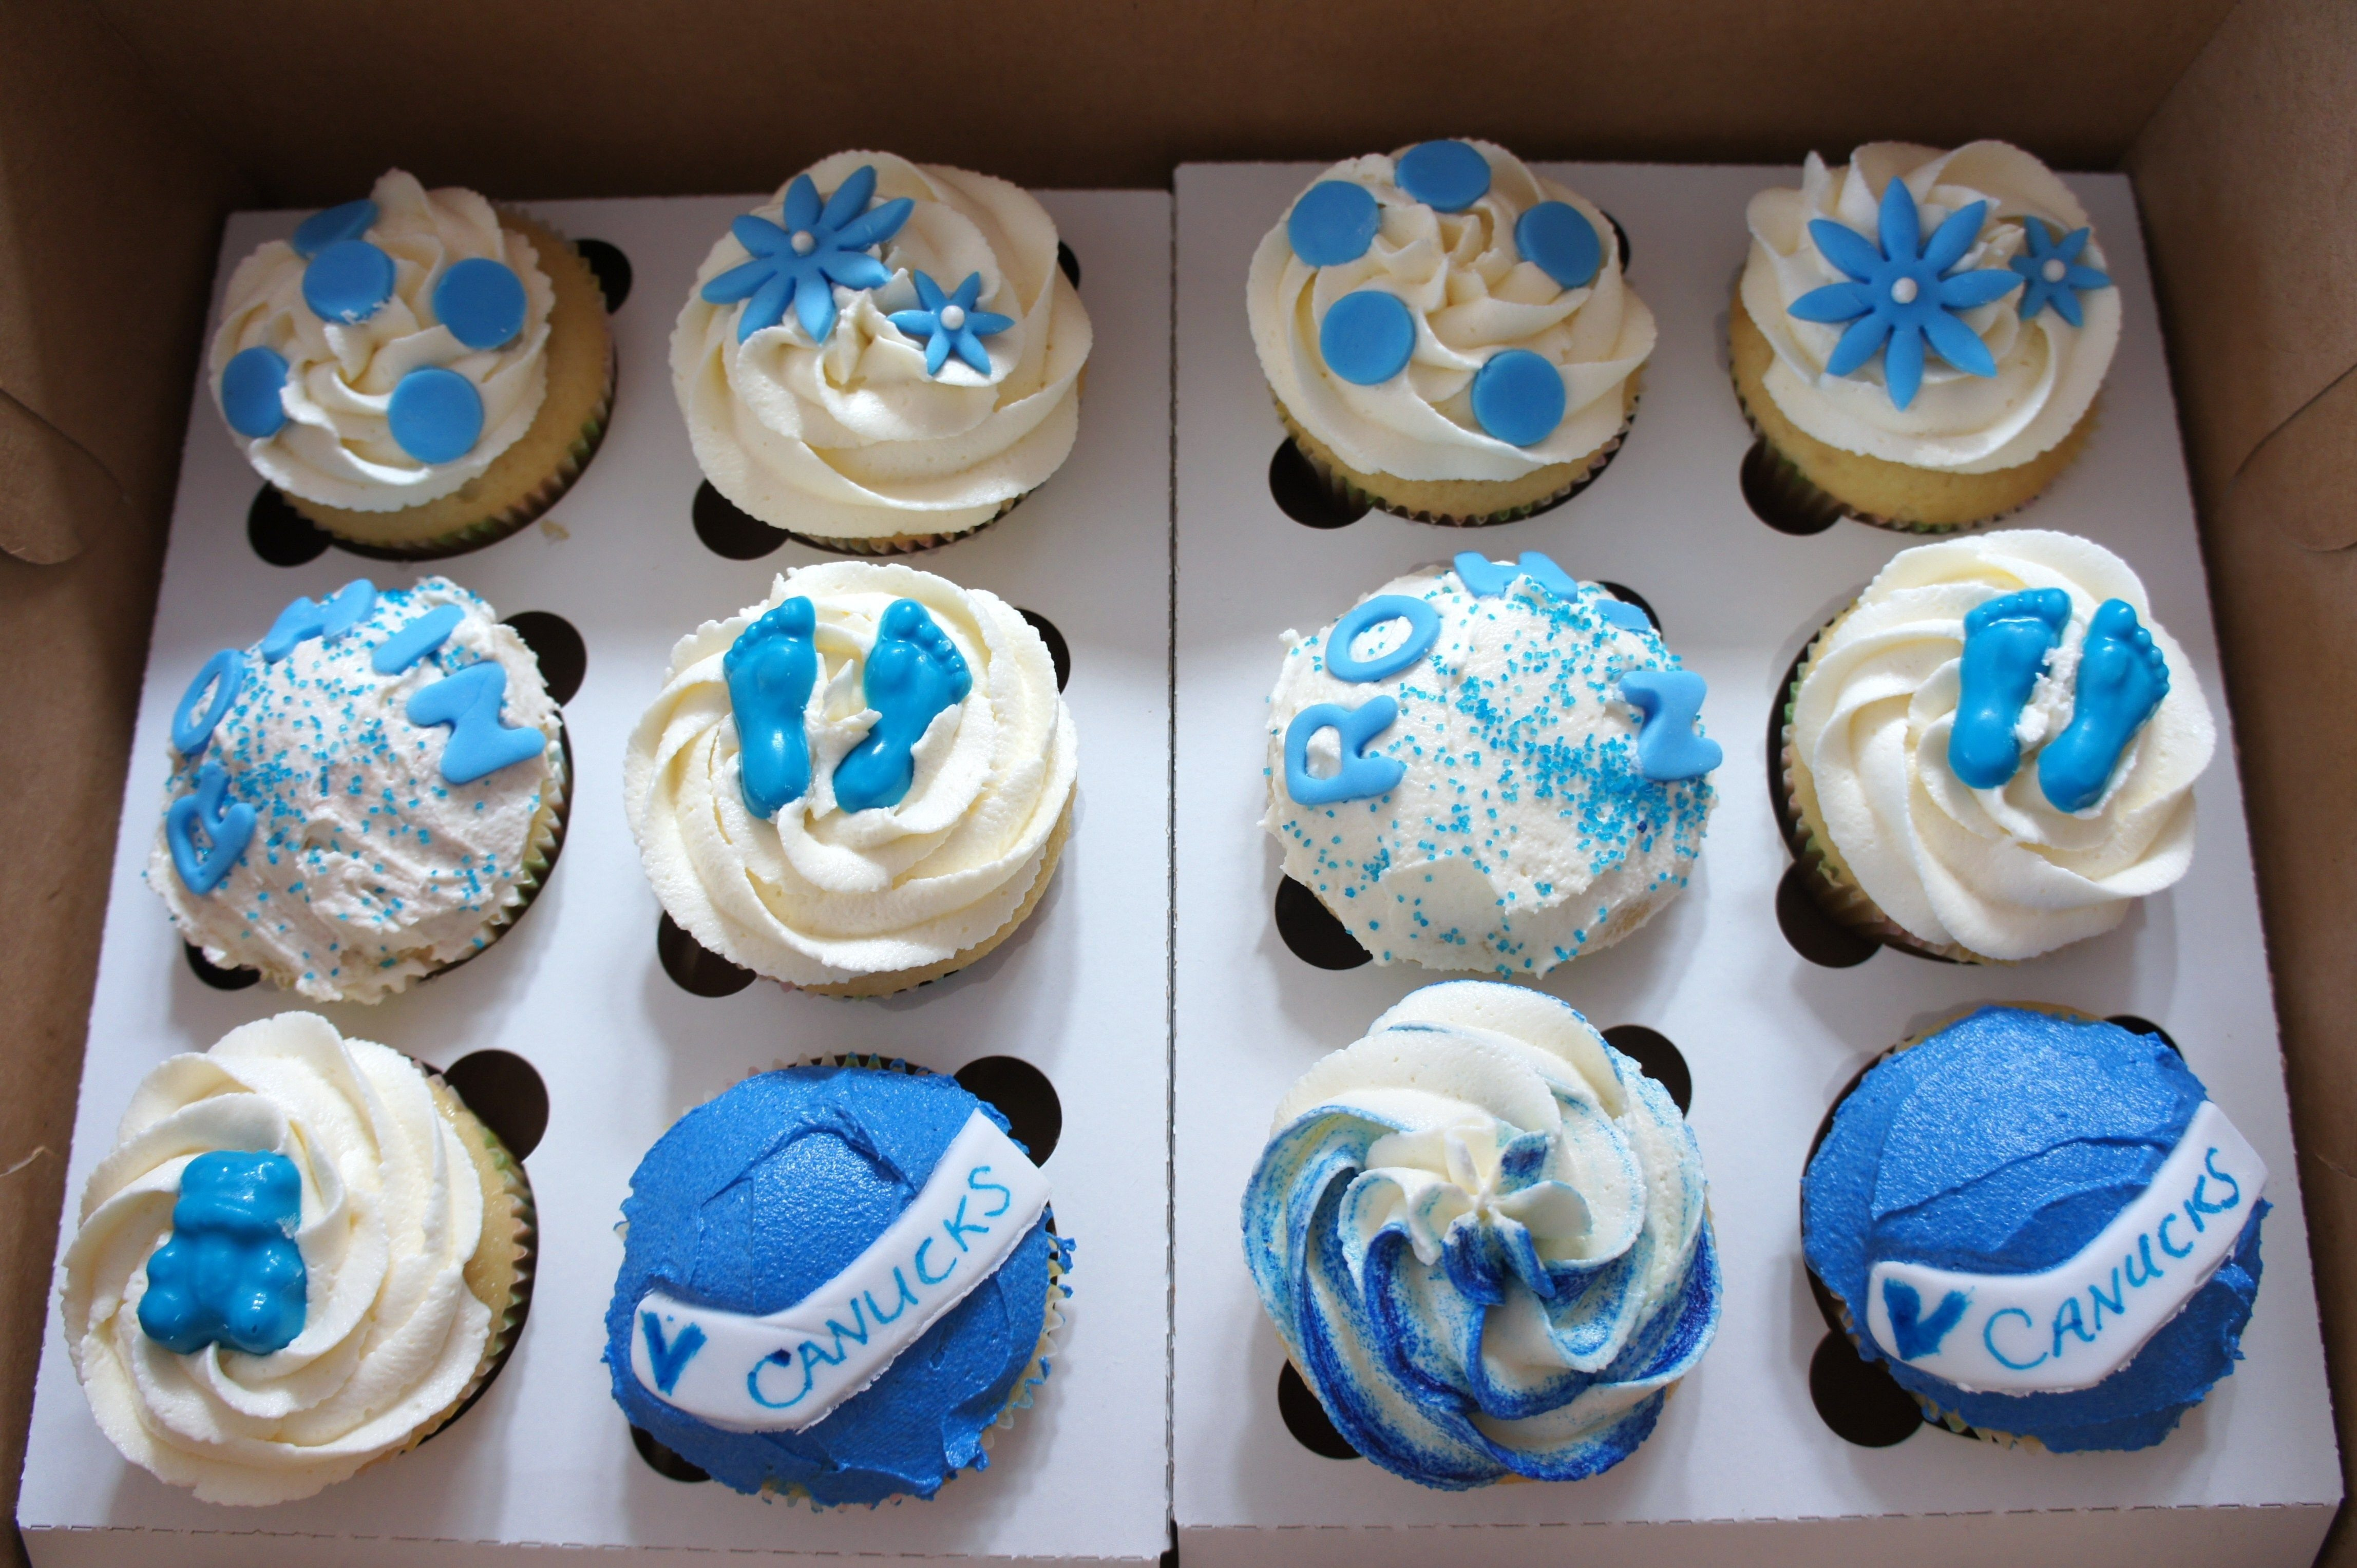 10 Famous Boy Baby Shower Cakes Ideas image result for boy baby shower cupcakes recipesdecorating 2020